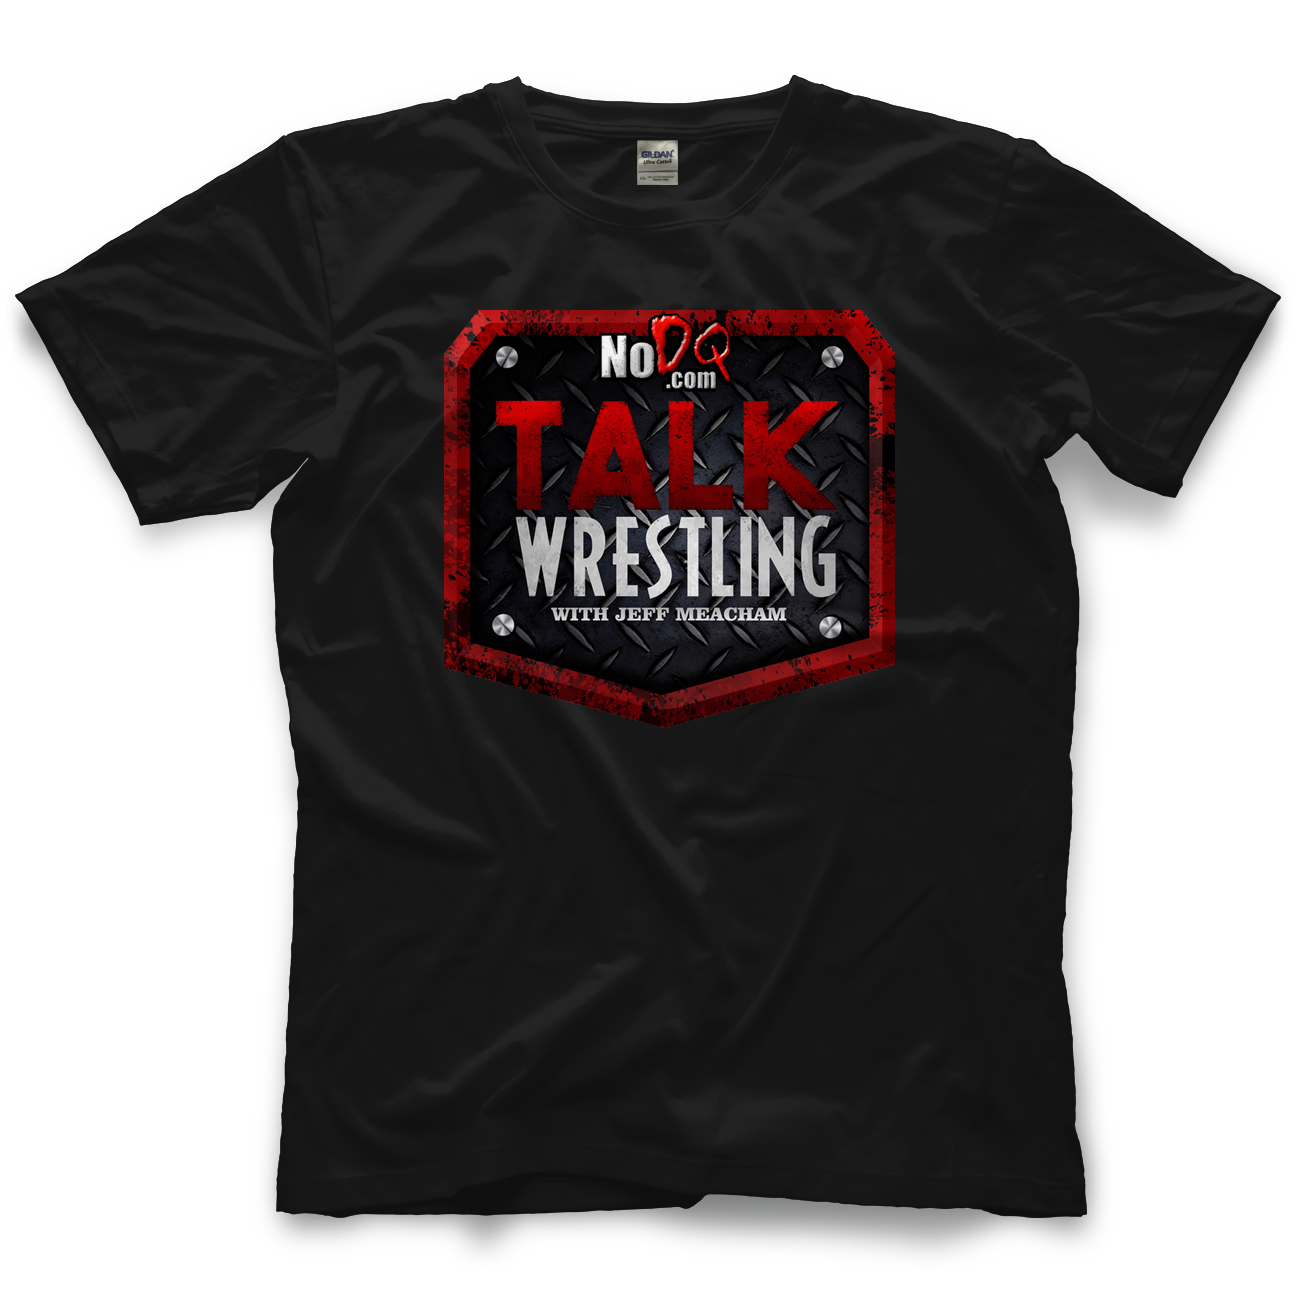 Talk Wrestling T-Shirt